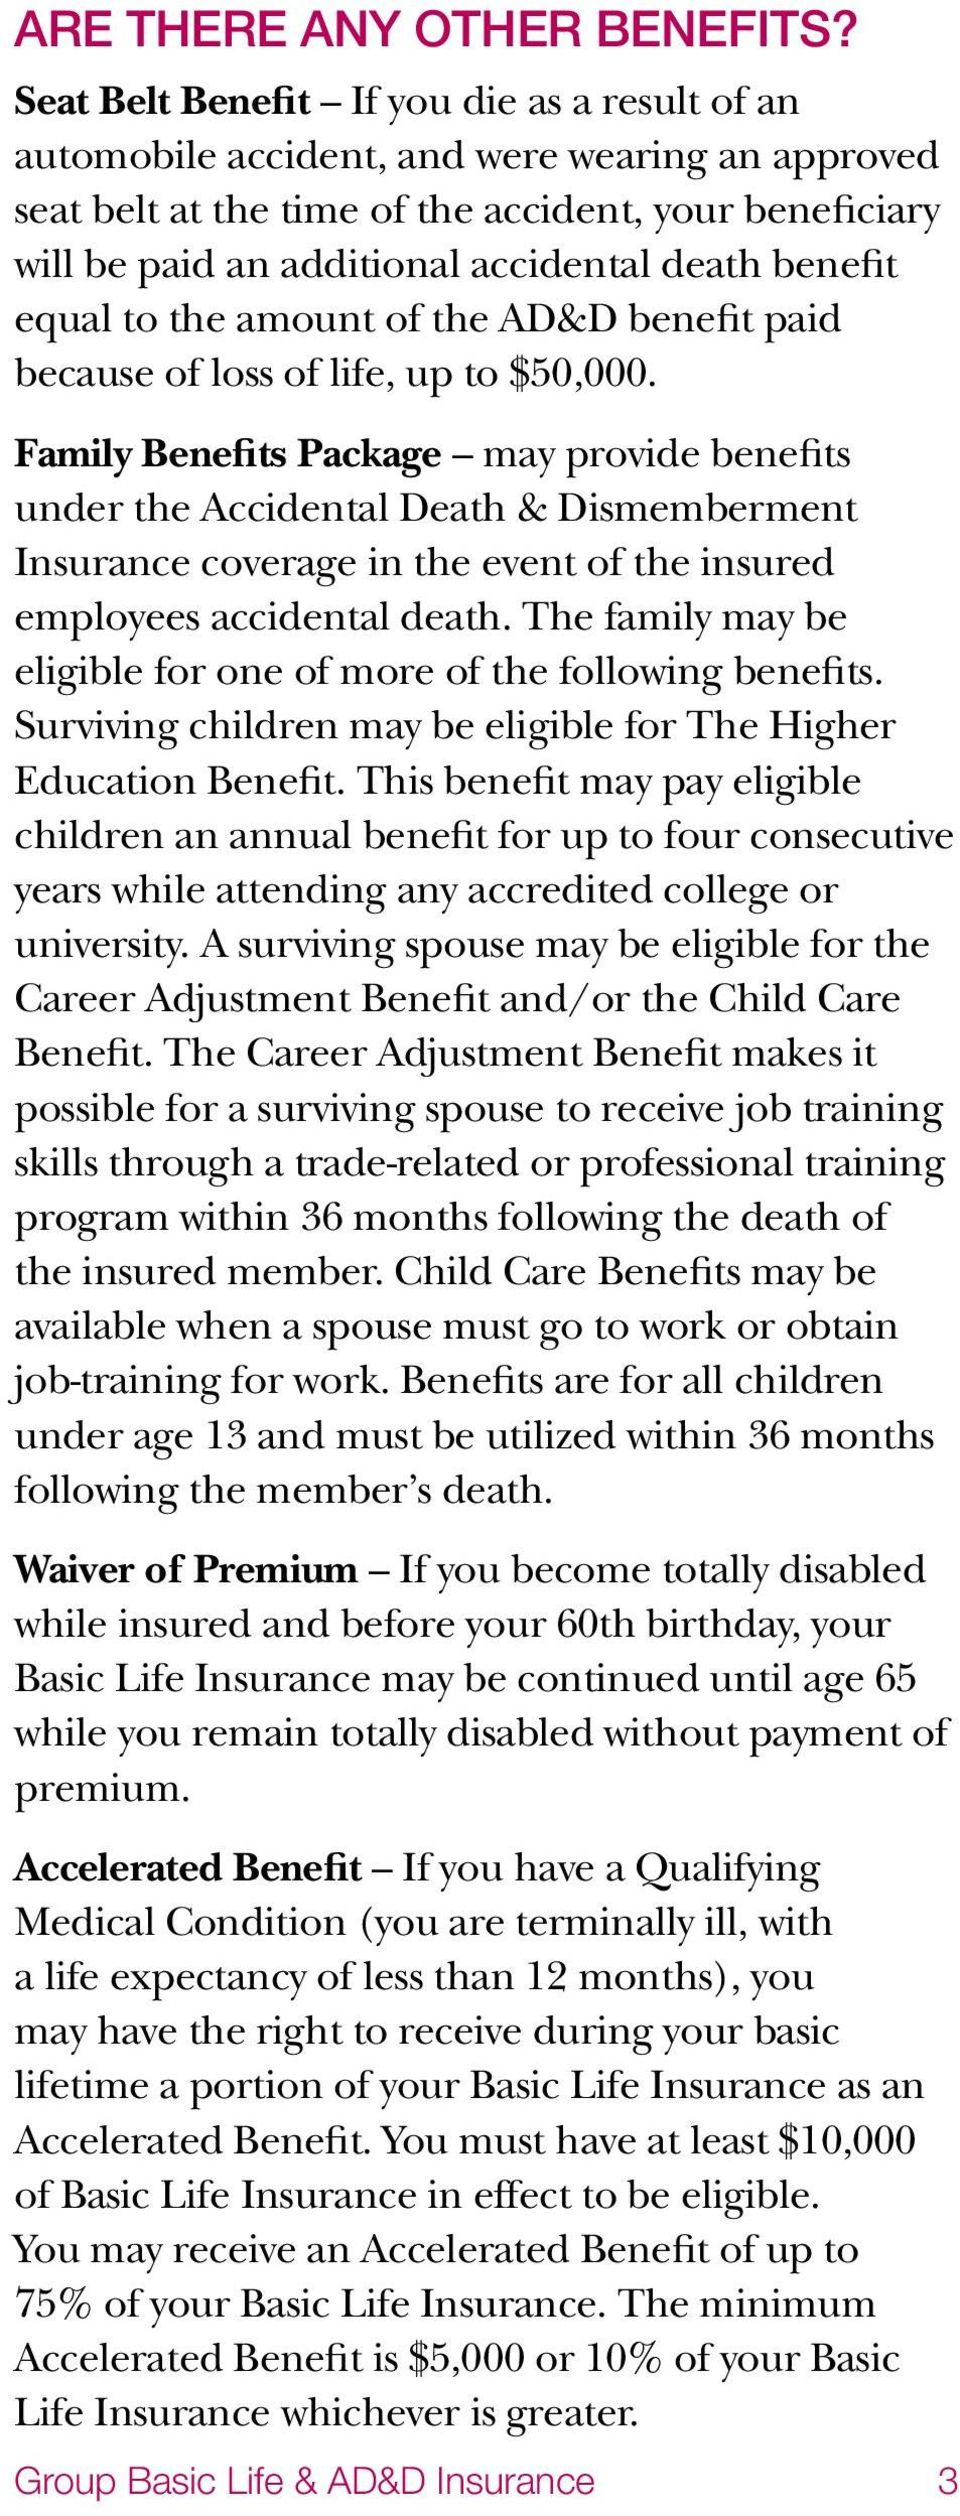 benefit equal to the amount of the AD&D benefit paid because of loss of life, up to $50,000.